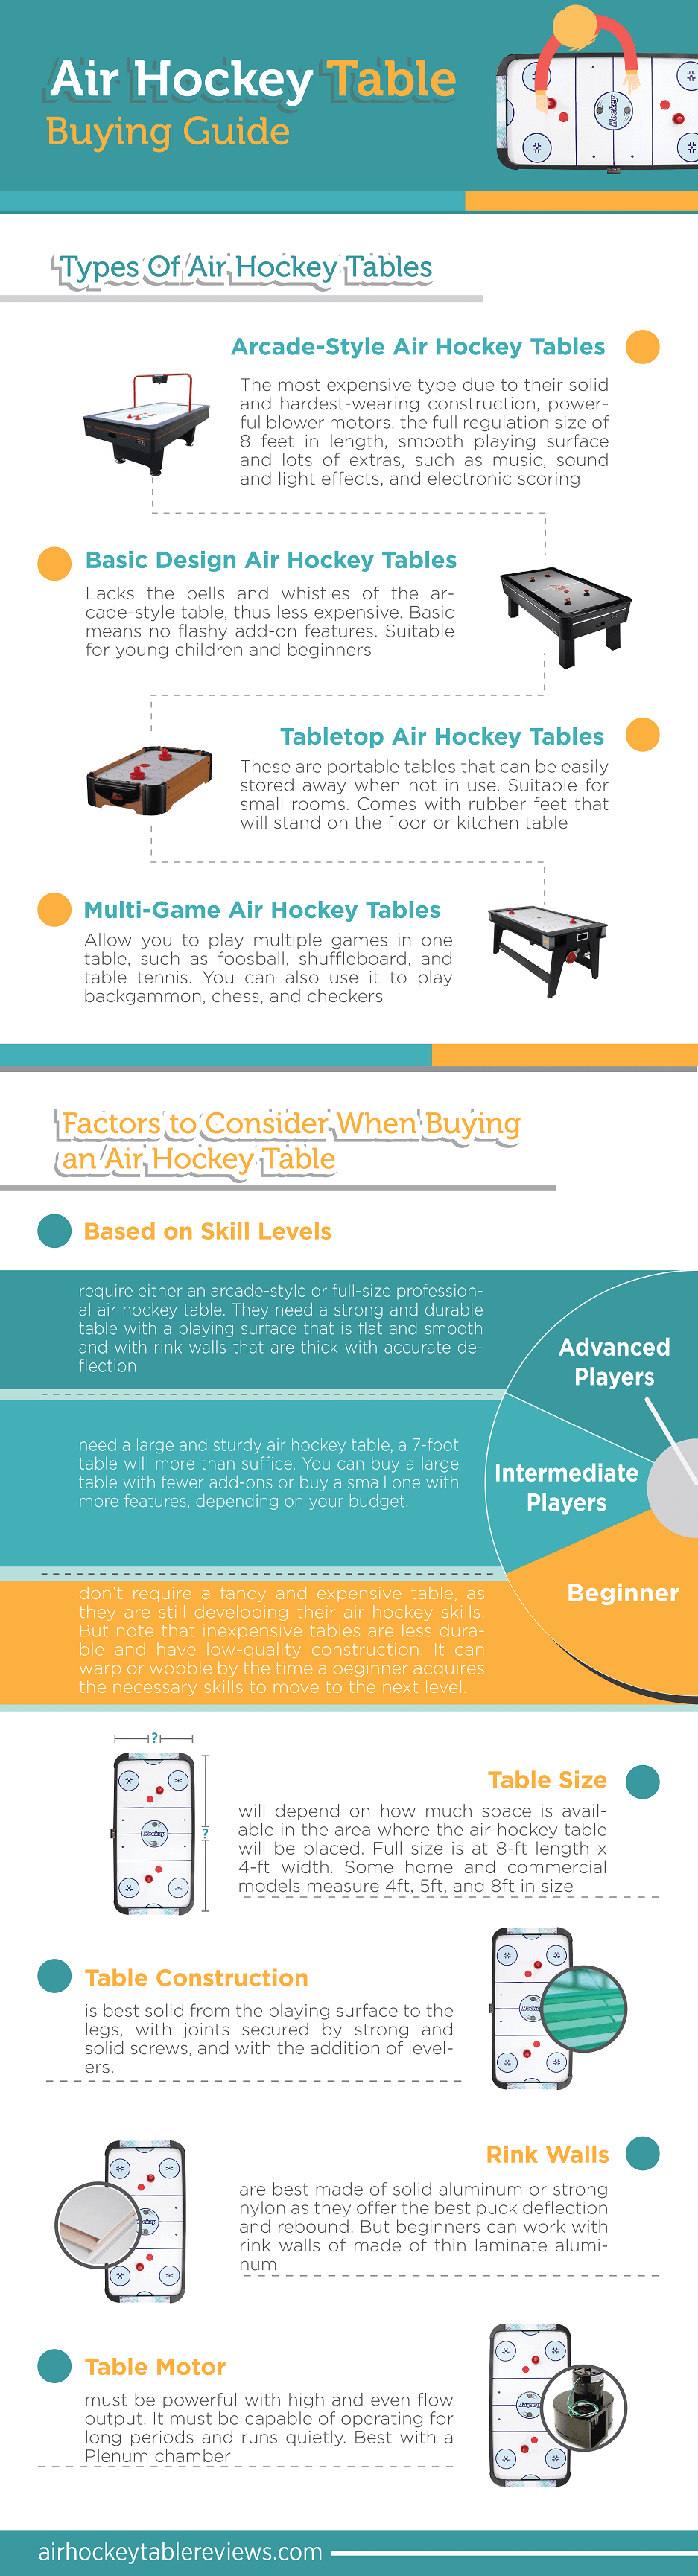 air hockey buyers infographic